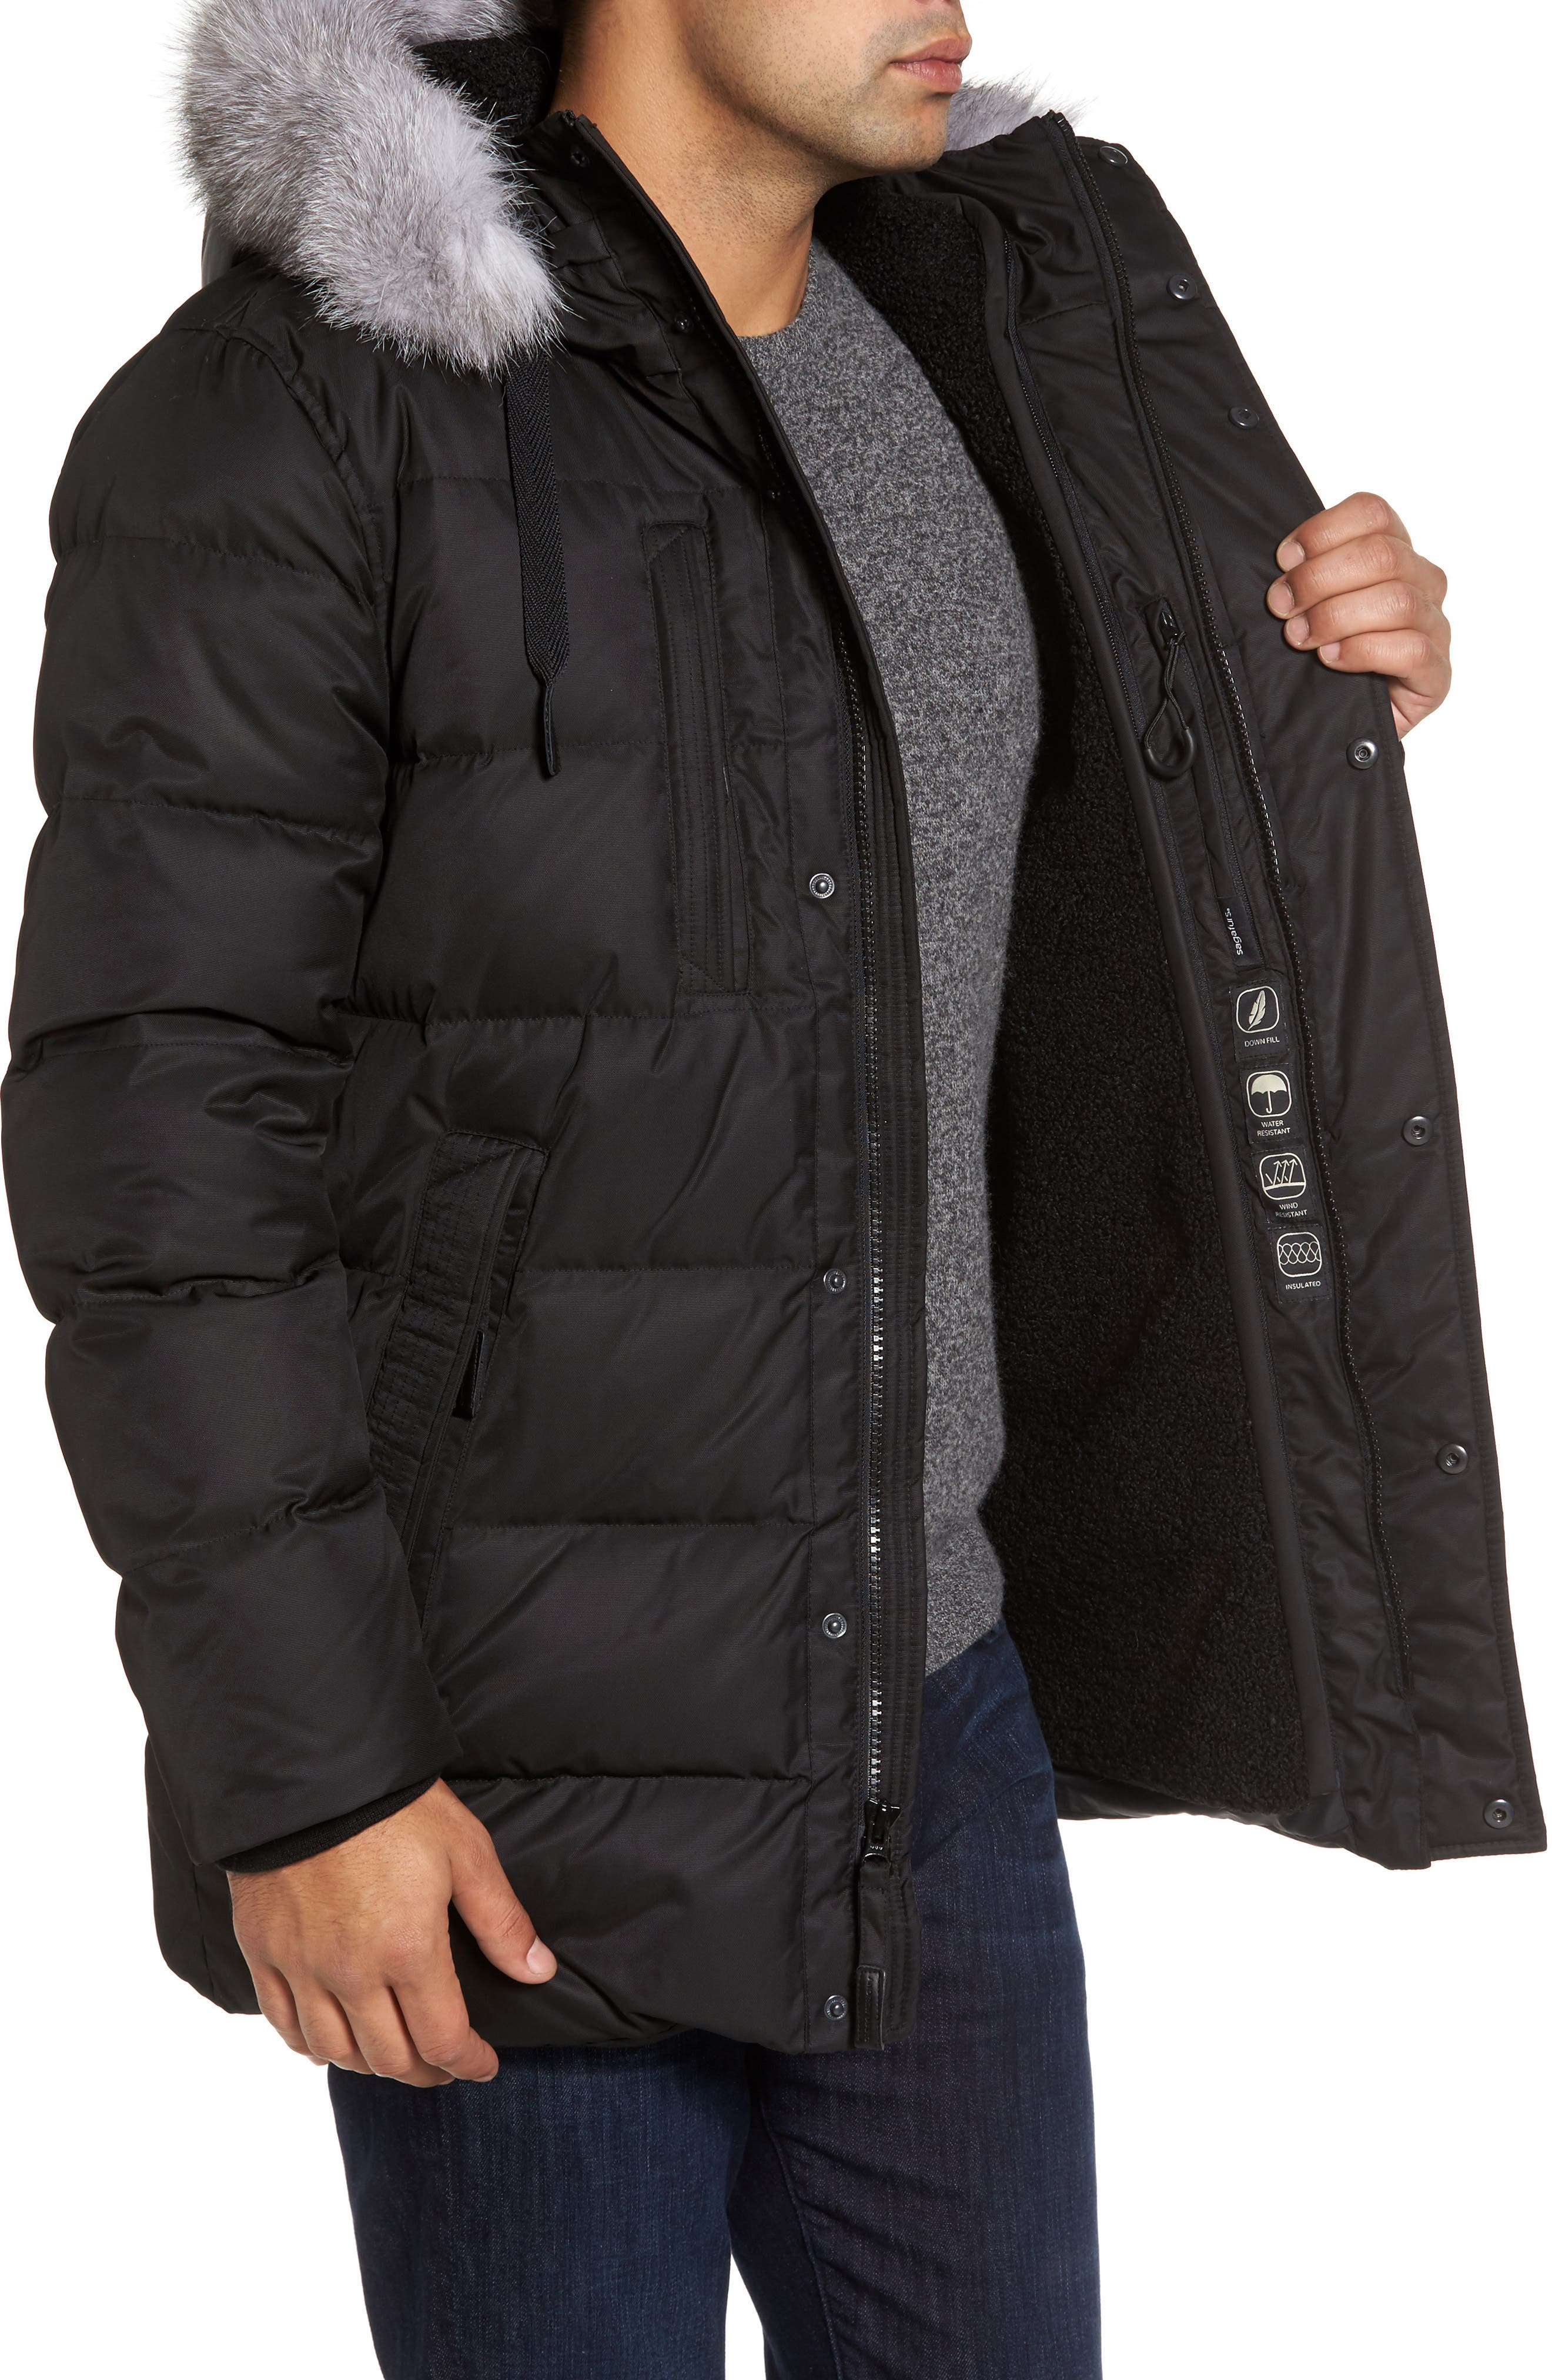 Alternate Image 3  - Andrew Marc Quilted Down Jacket with Genuine Fox Fur Trim